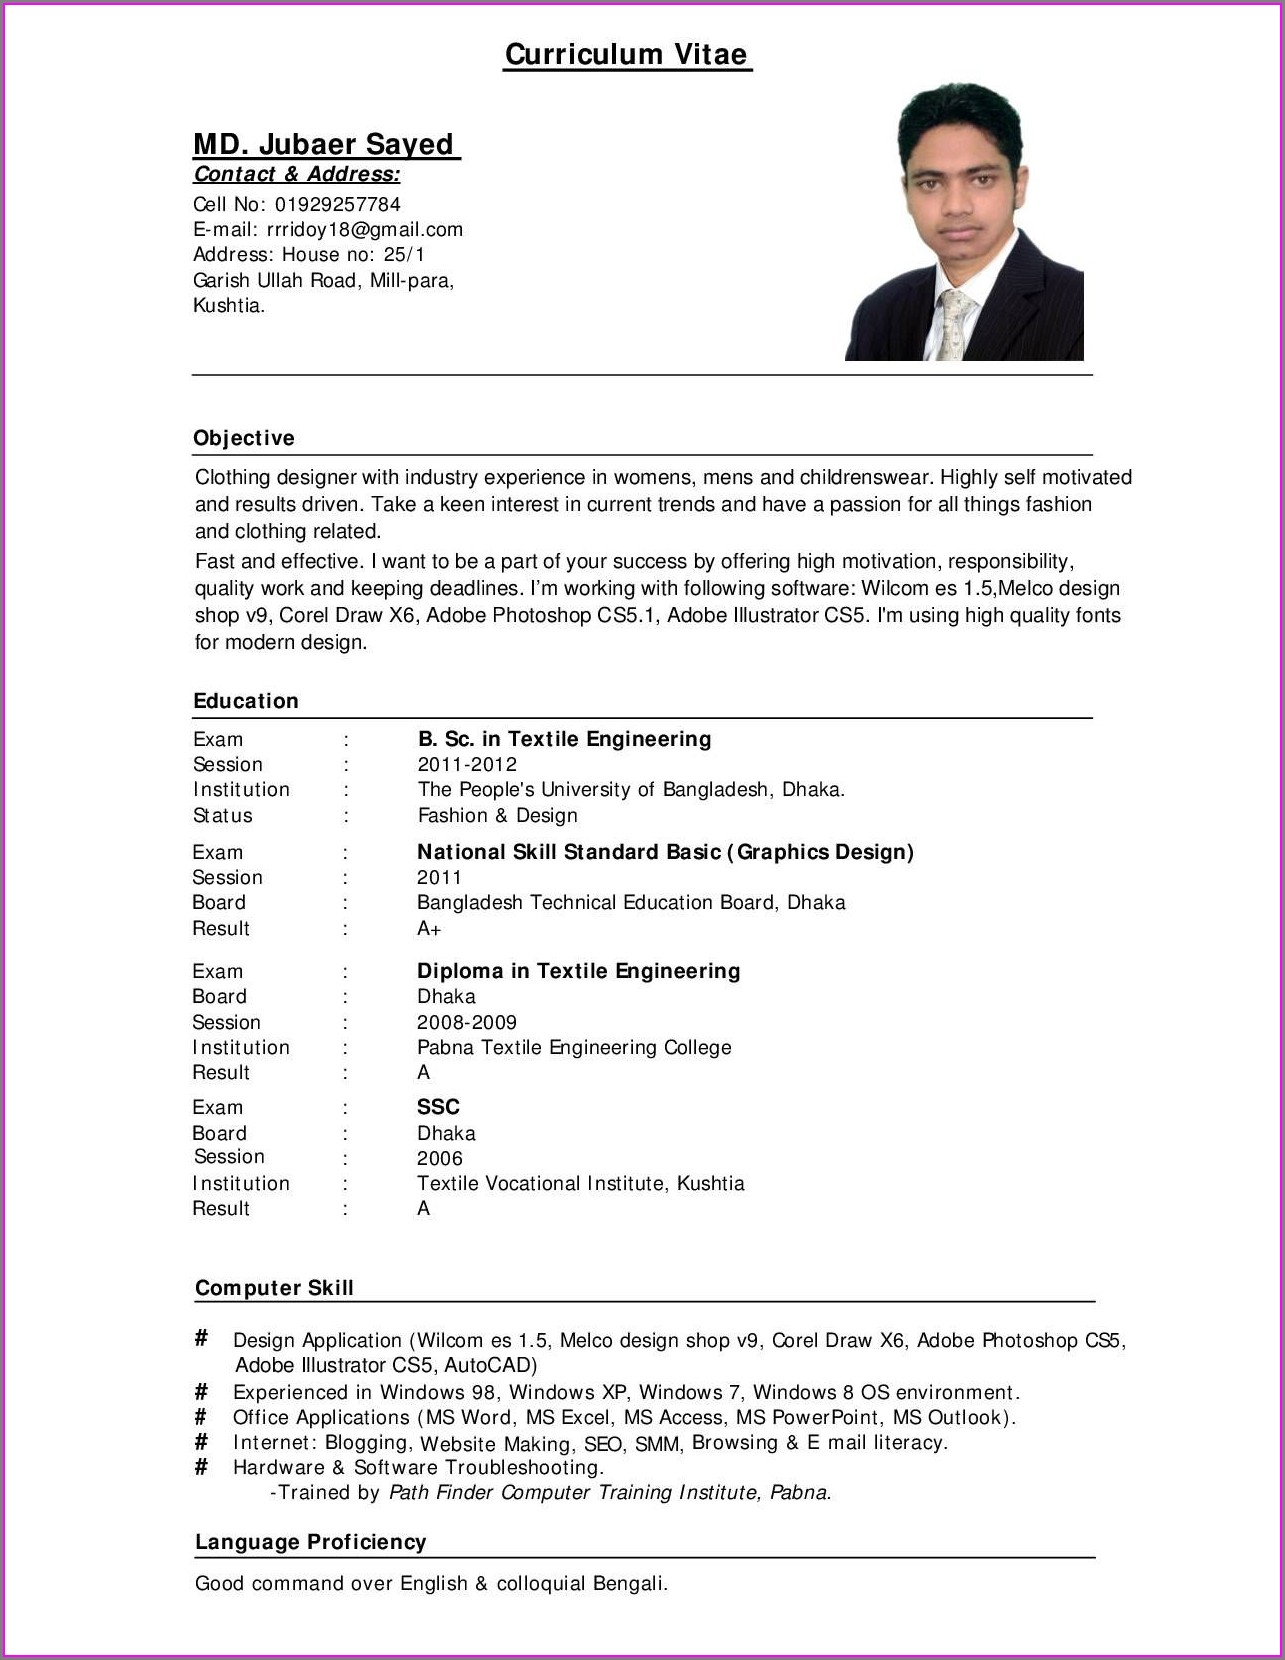 Curriculum Vitae Example Free Download